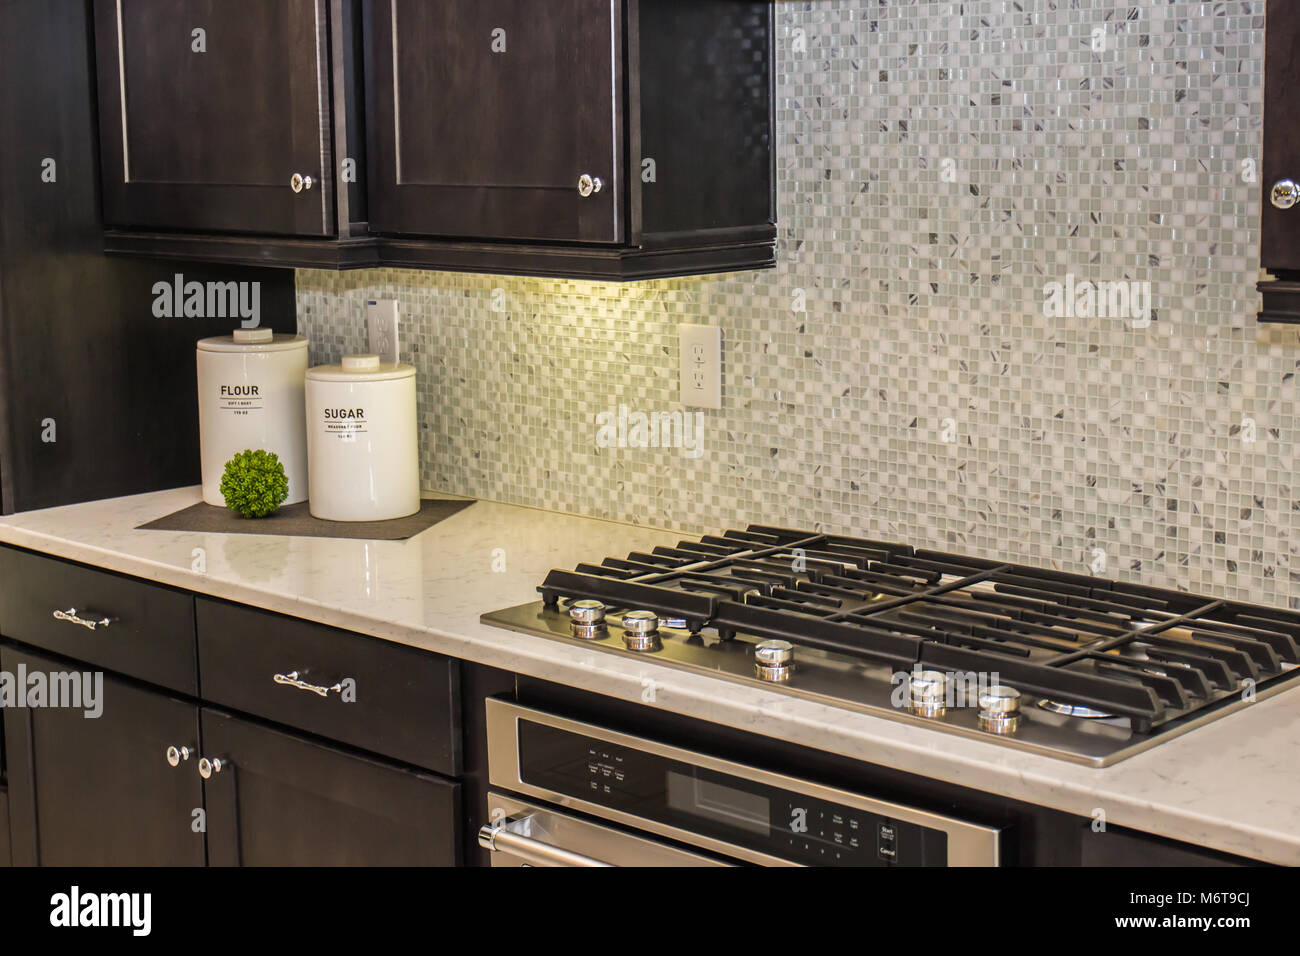 Modern Kitchen Counter With Canisters & Stove Top Stock ...